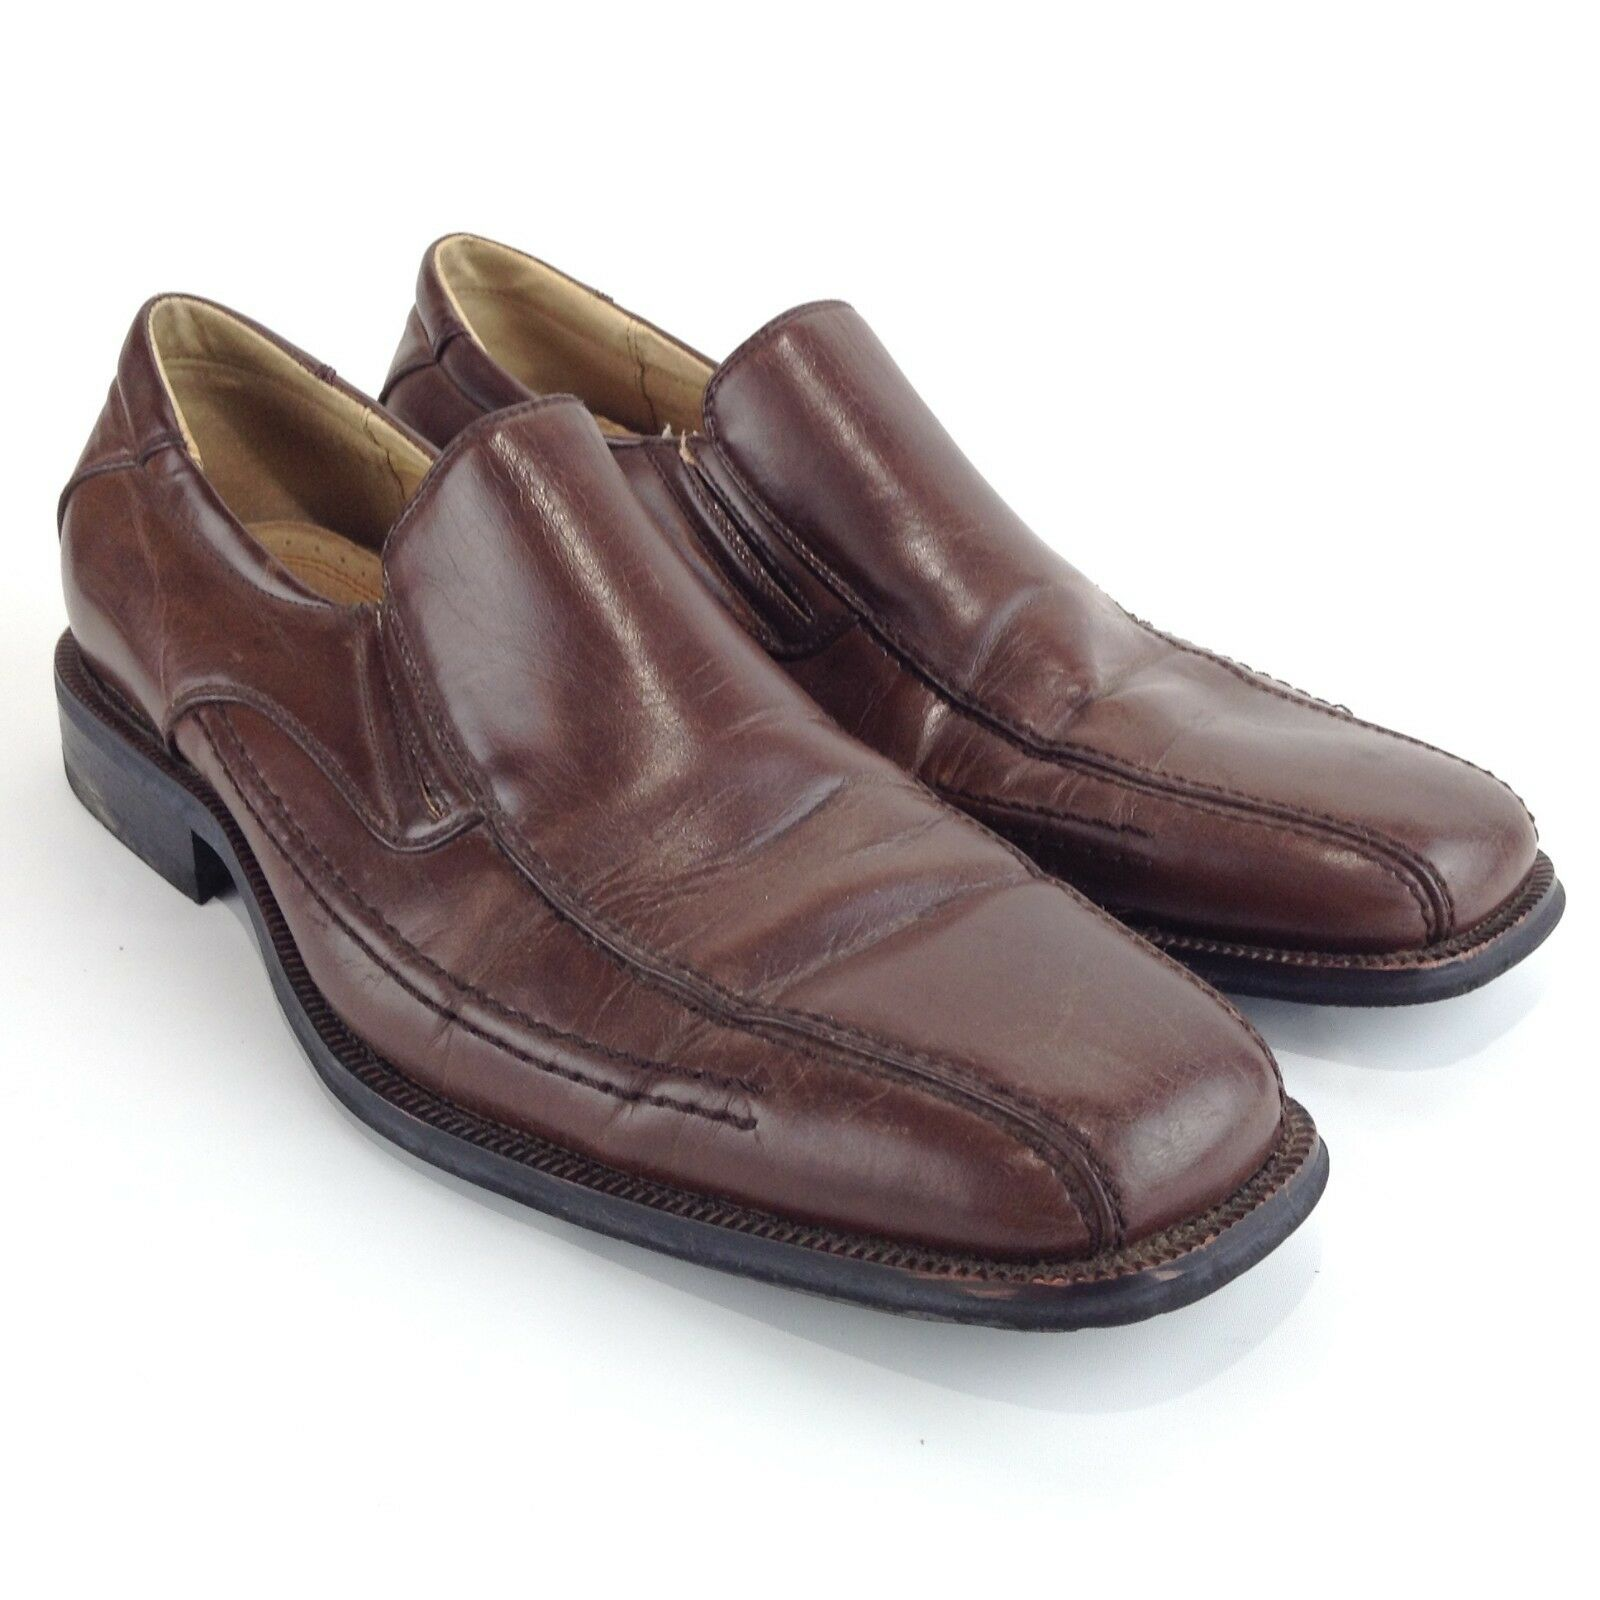 STEVE MADDEN Men's M ROYAL Dress Brown Leather Loafers Casual Dress ROYAL Shoes Size 9.5M 1bf8c2